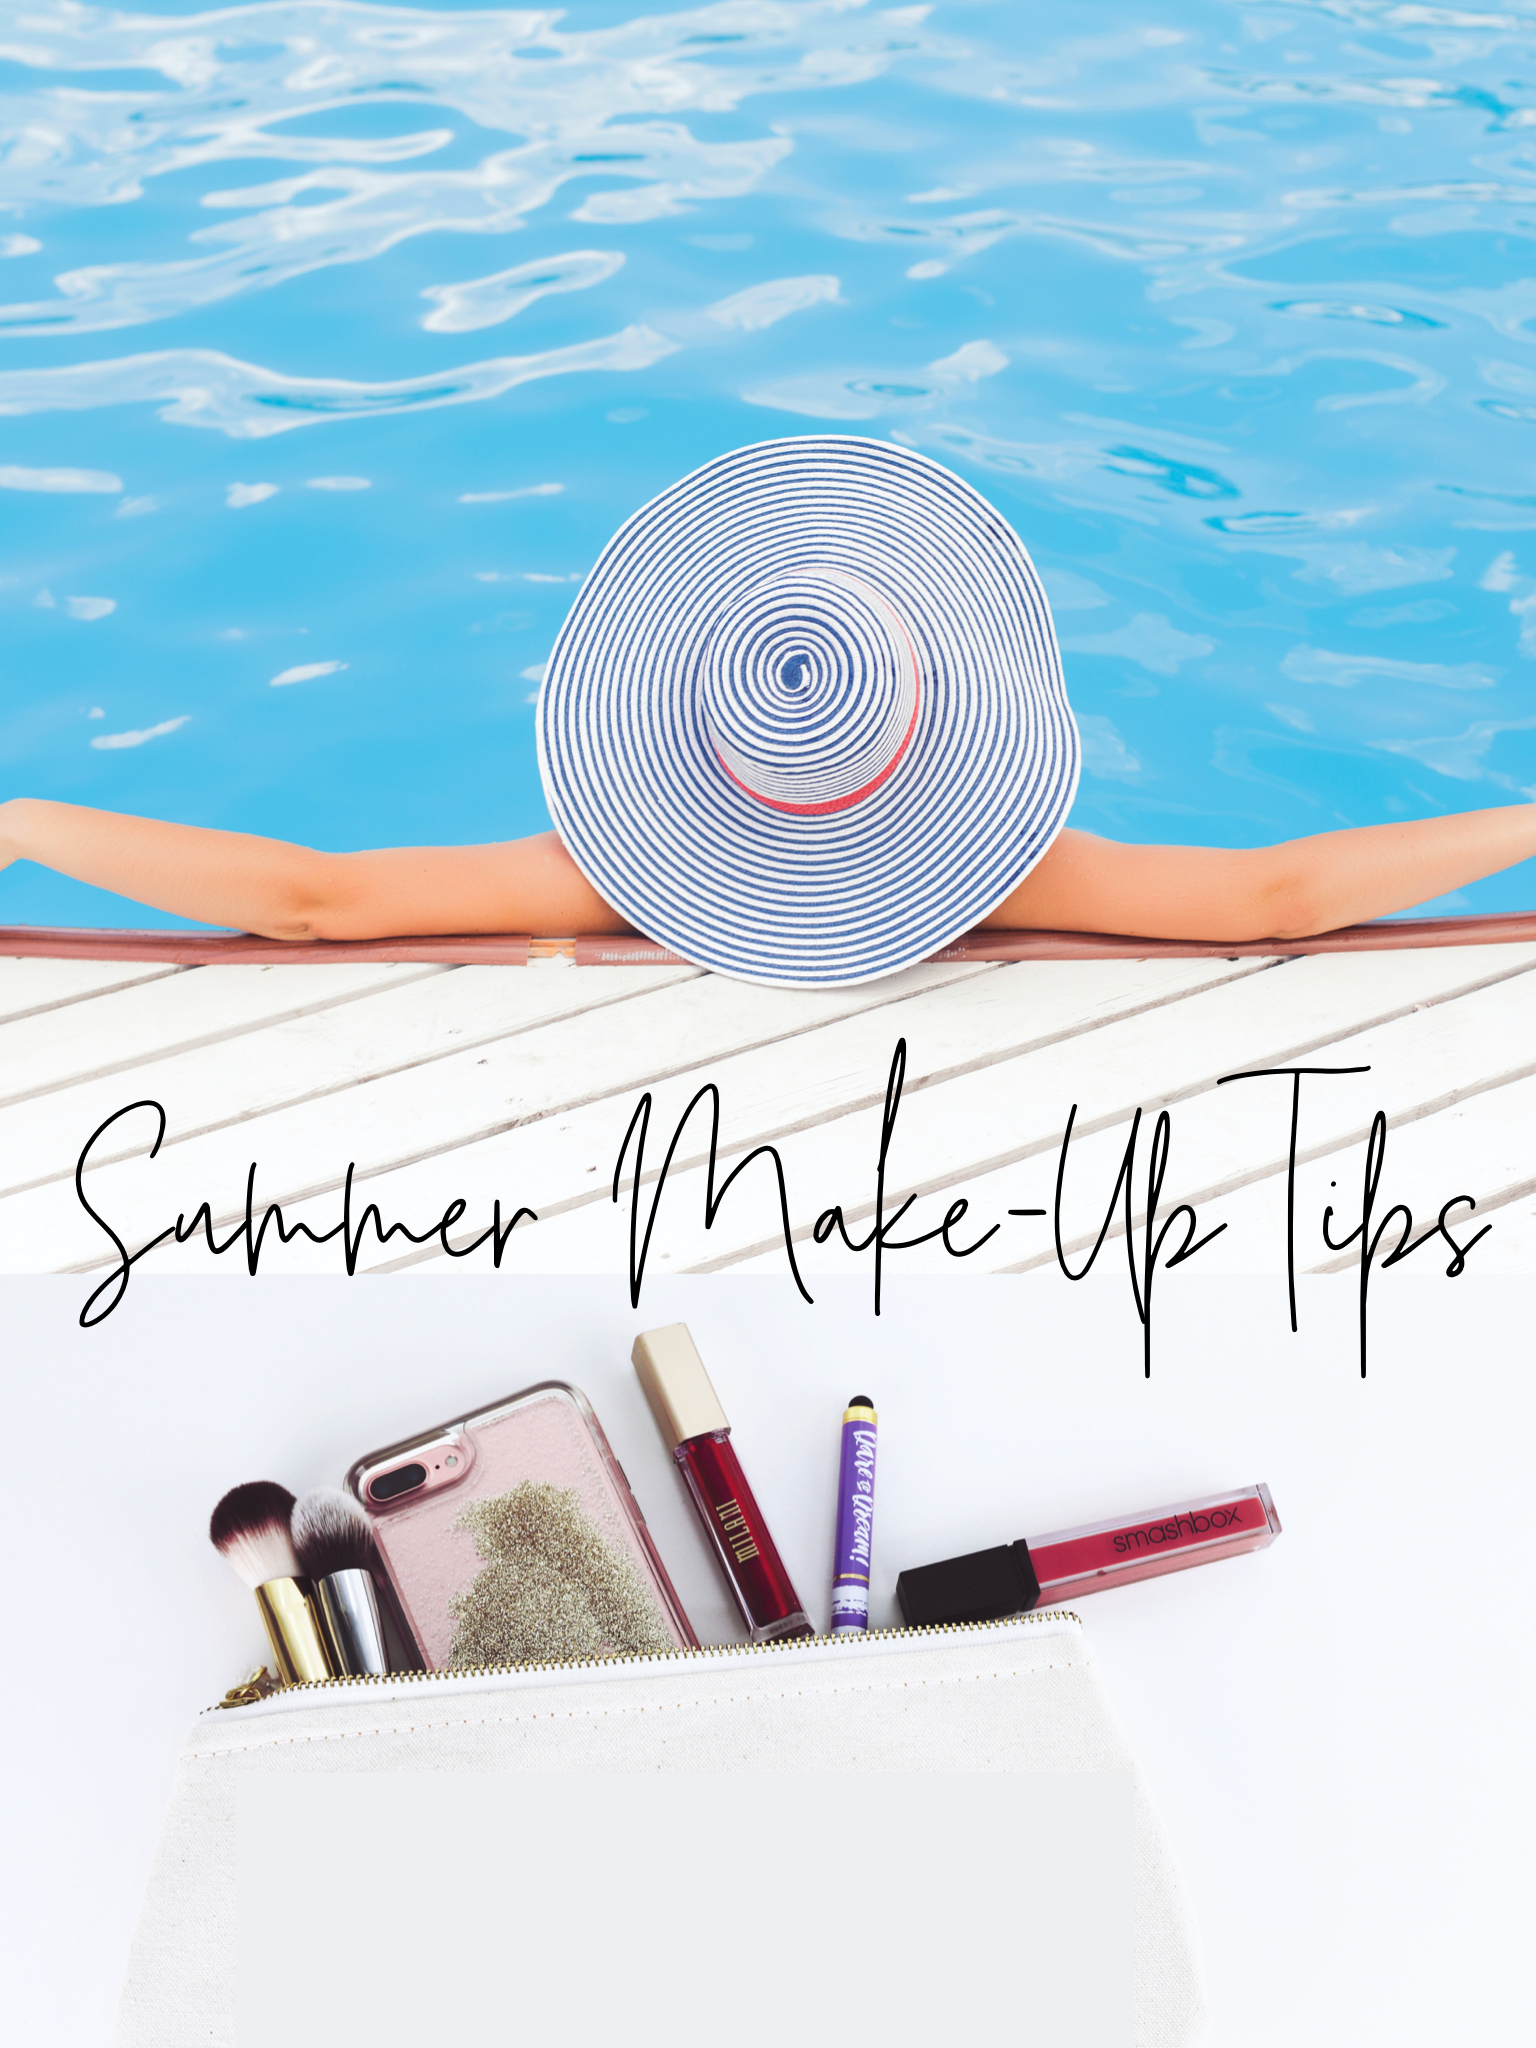 6 Tips for Summer Make-Up Routine